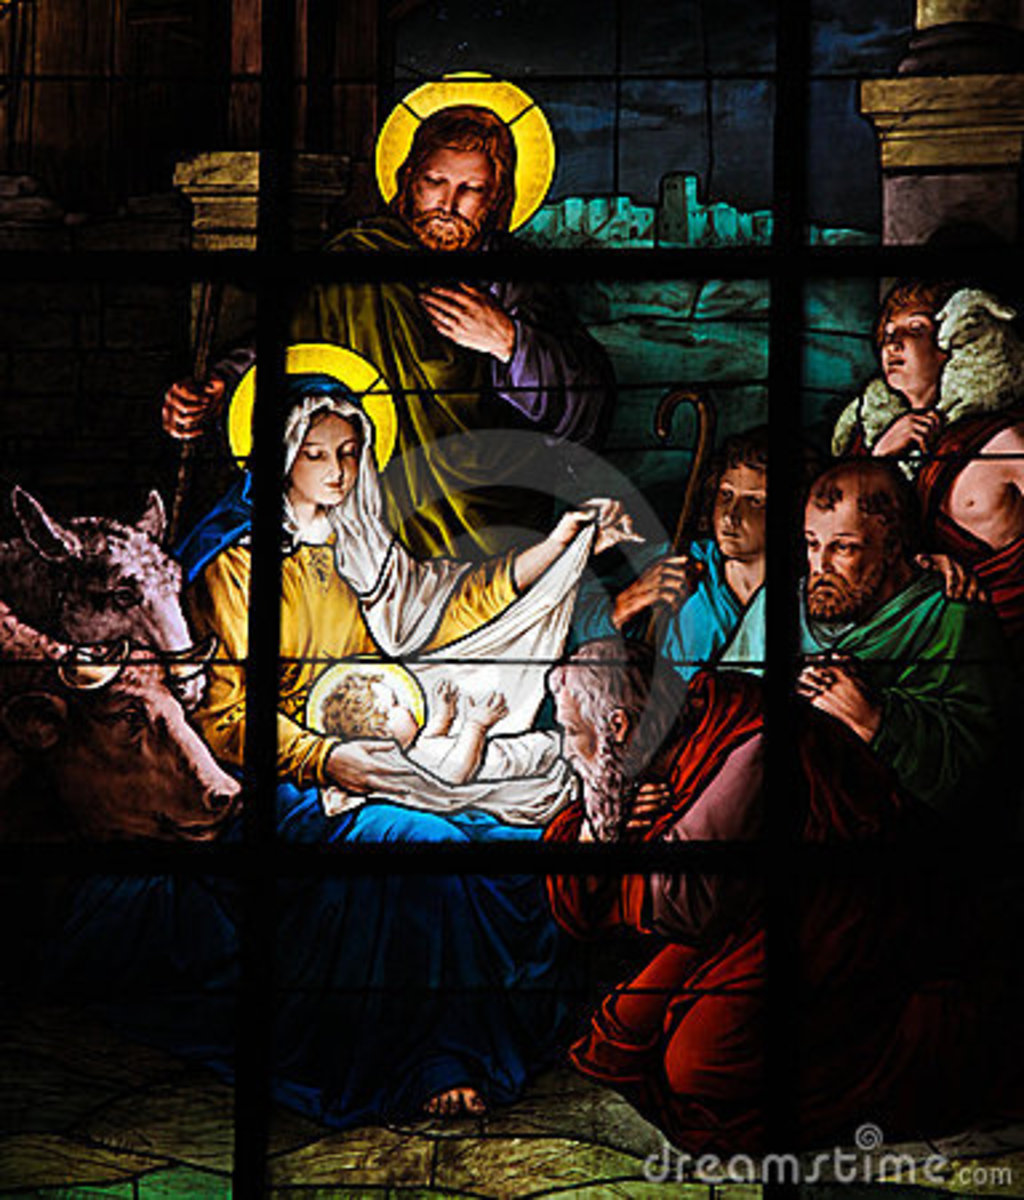 a-short-history-on-nativity-scenes-and-christmas